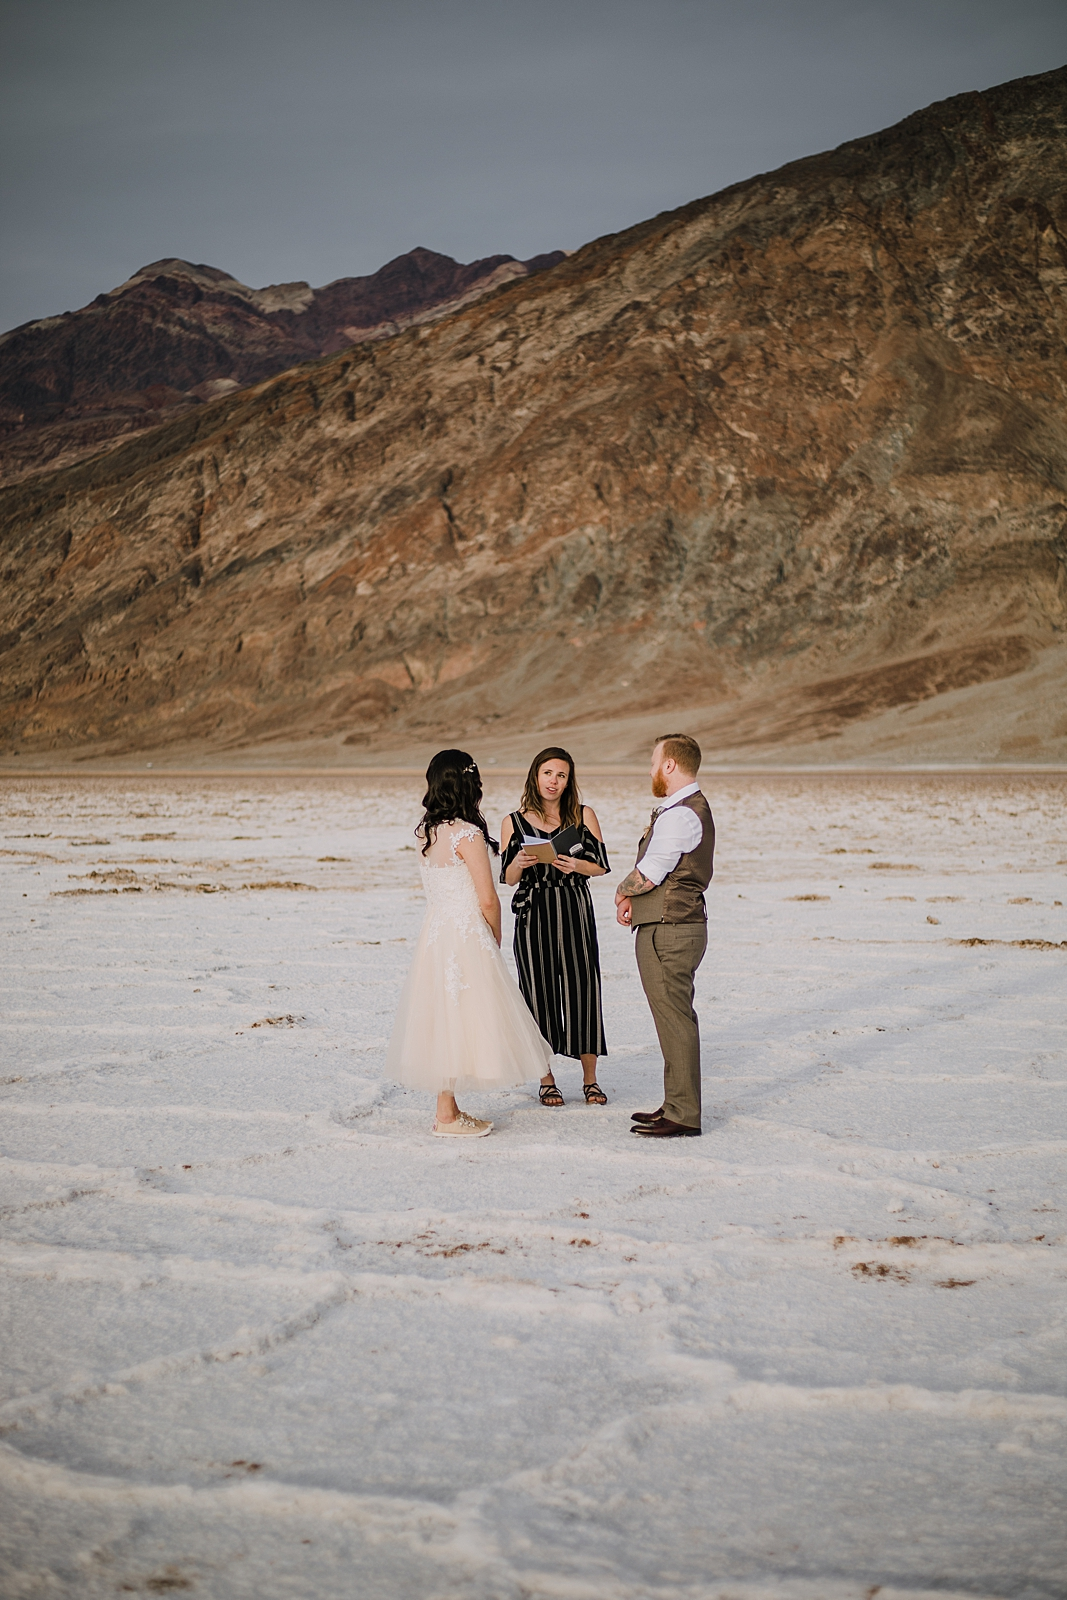 eloping on the salt flats, death valley national park elopement, elope in death valley, badwater basin elopement, hiking in death valley national park, sunset at badwater basin